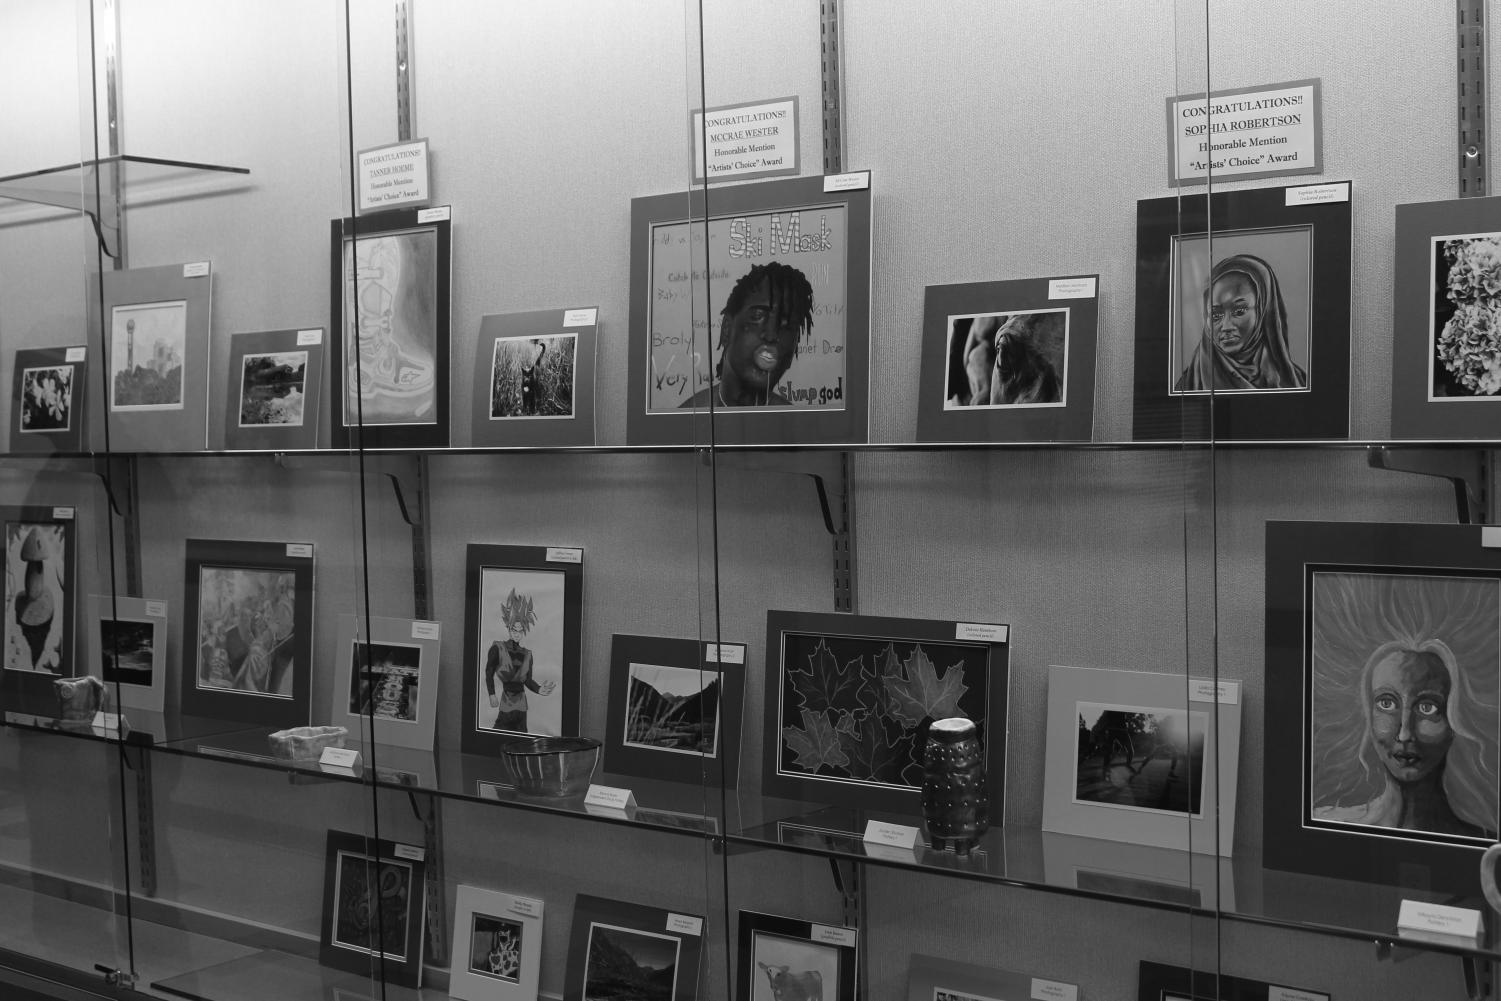 Display cases showing the art pieces that made it into the first art show.